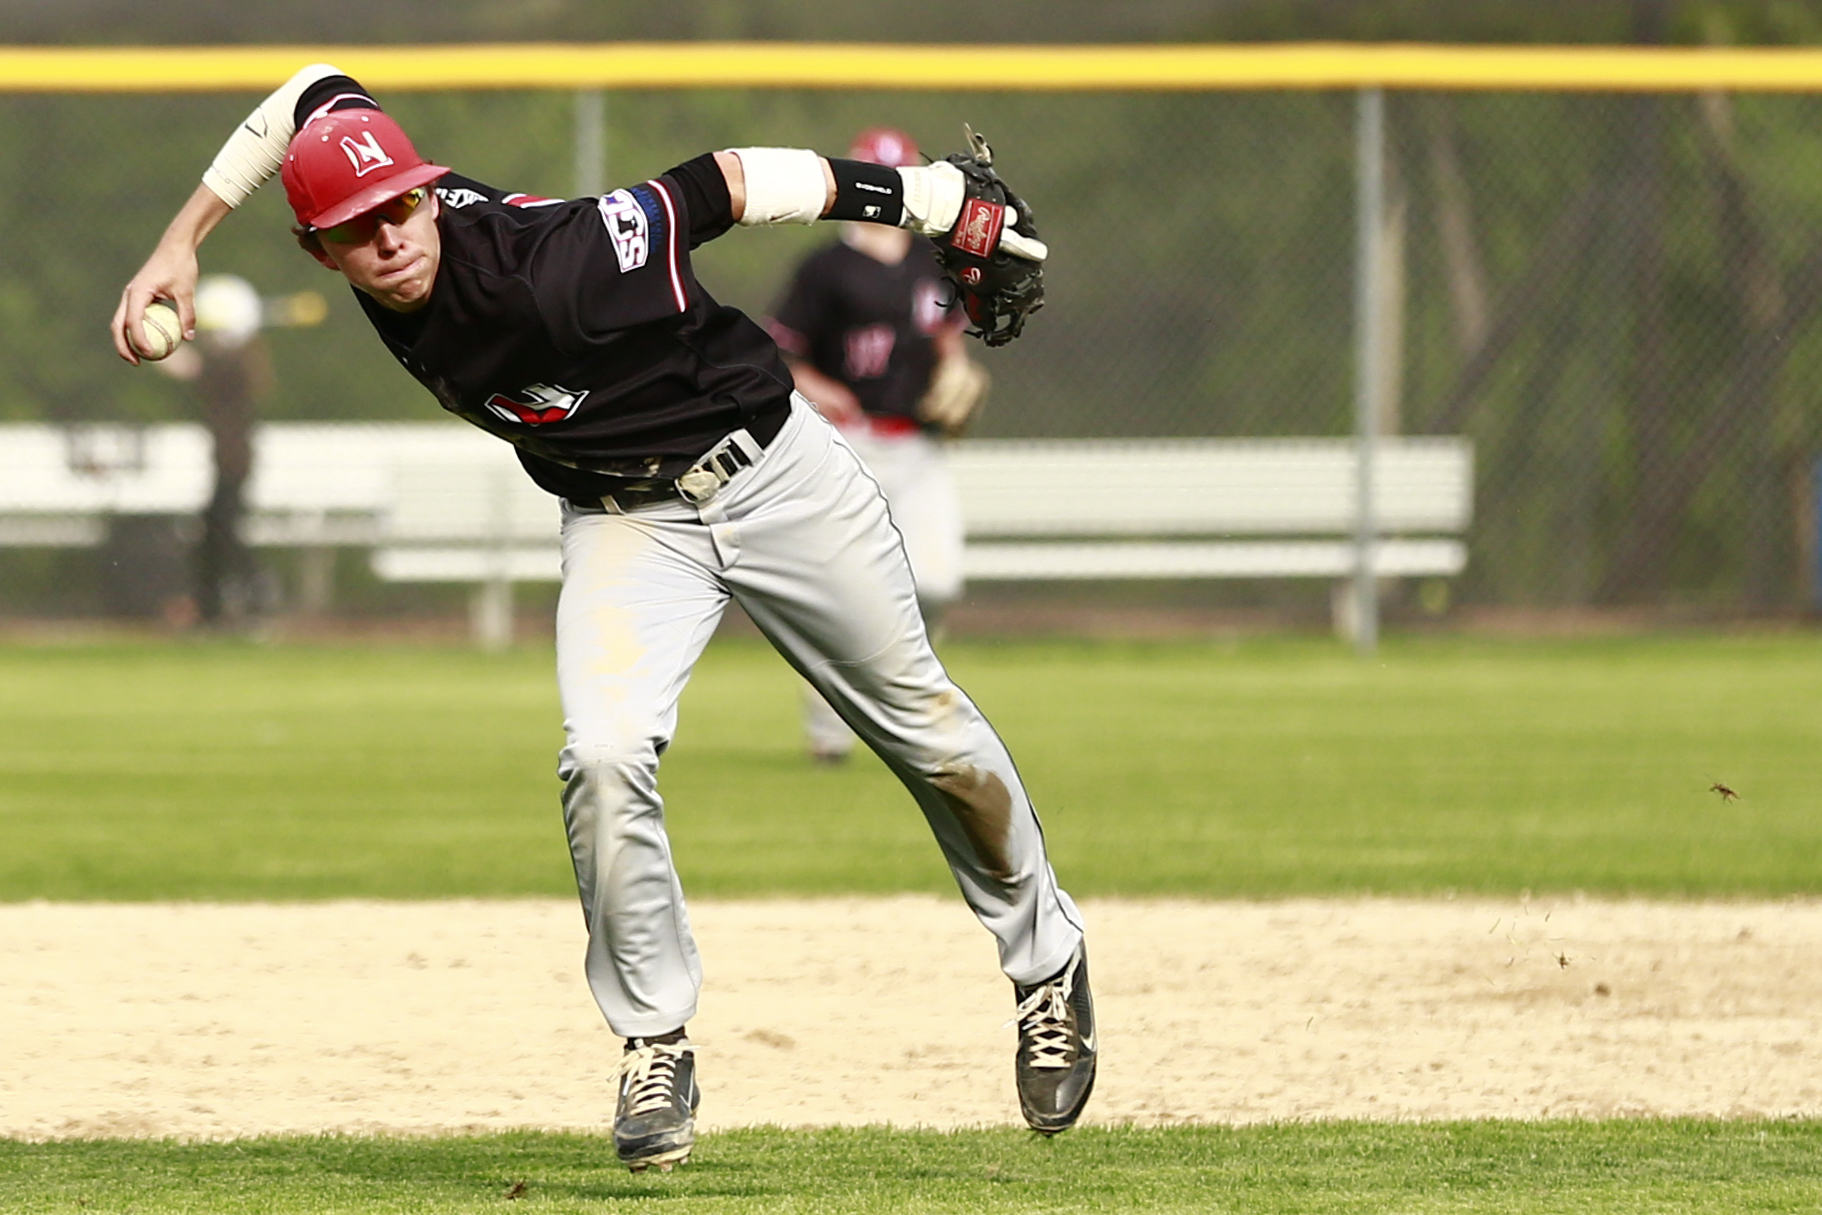 Angelo Altavilla (7) of Lakeville North throwing the inning ending out to first base in the 6th inning. Angelo Altavilla started off the game by hitting a 3 run homer and helped his team secure a 12 to 6 victory against Apple Valley. Photo by Chris Juhn